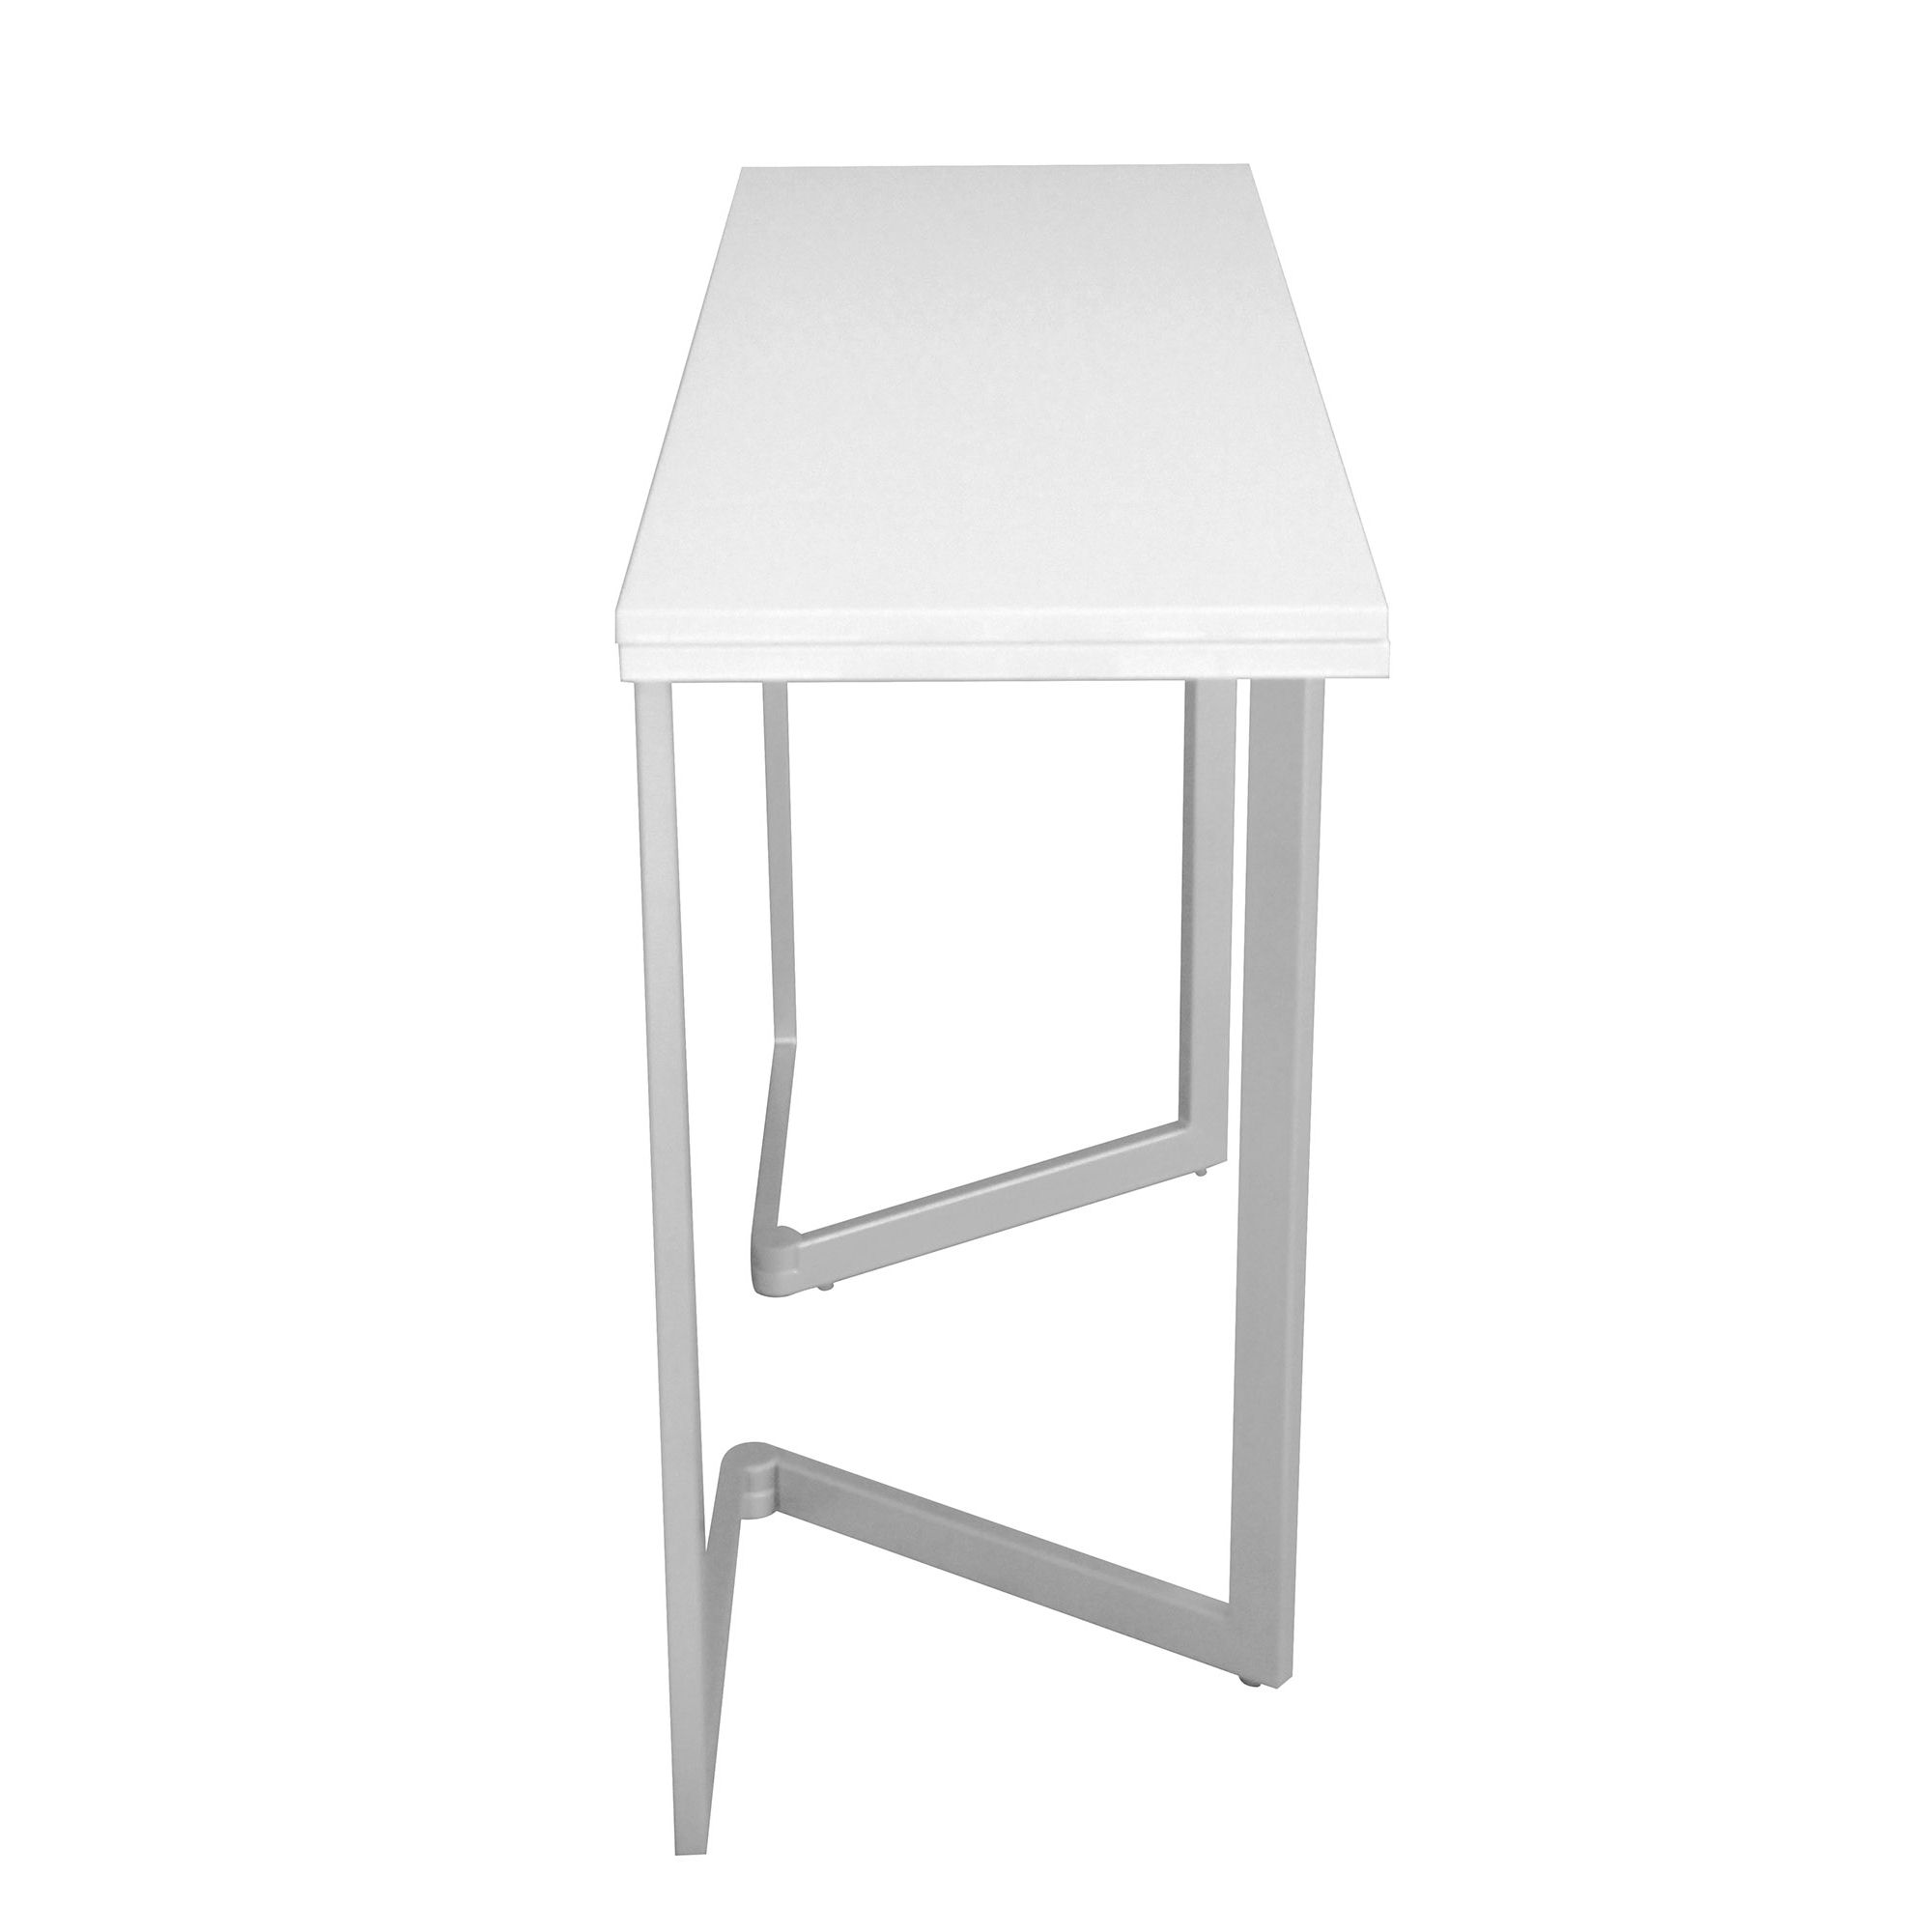 Table console extensible laqu e jade pictures to pin on for Table laquee extensible